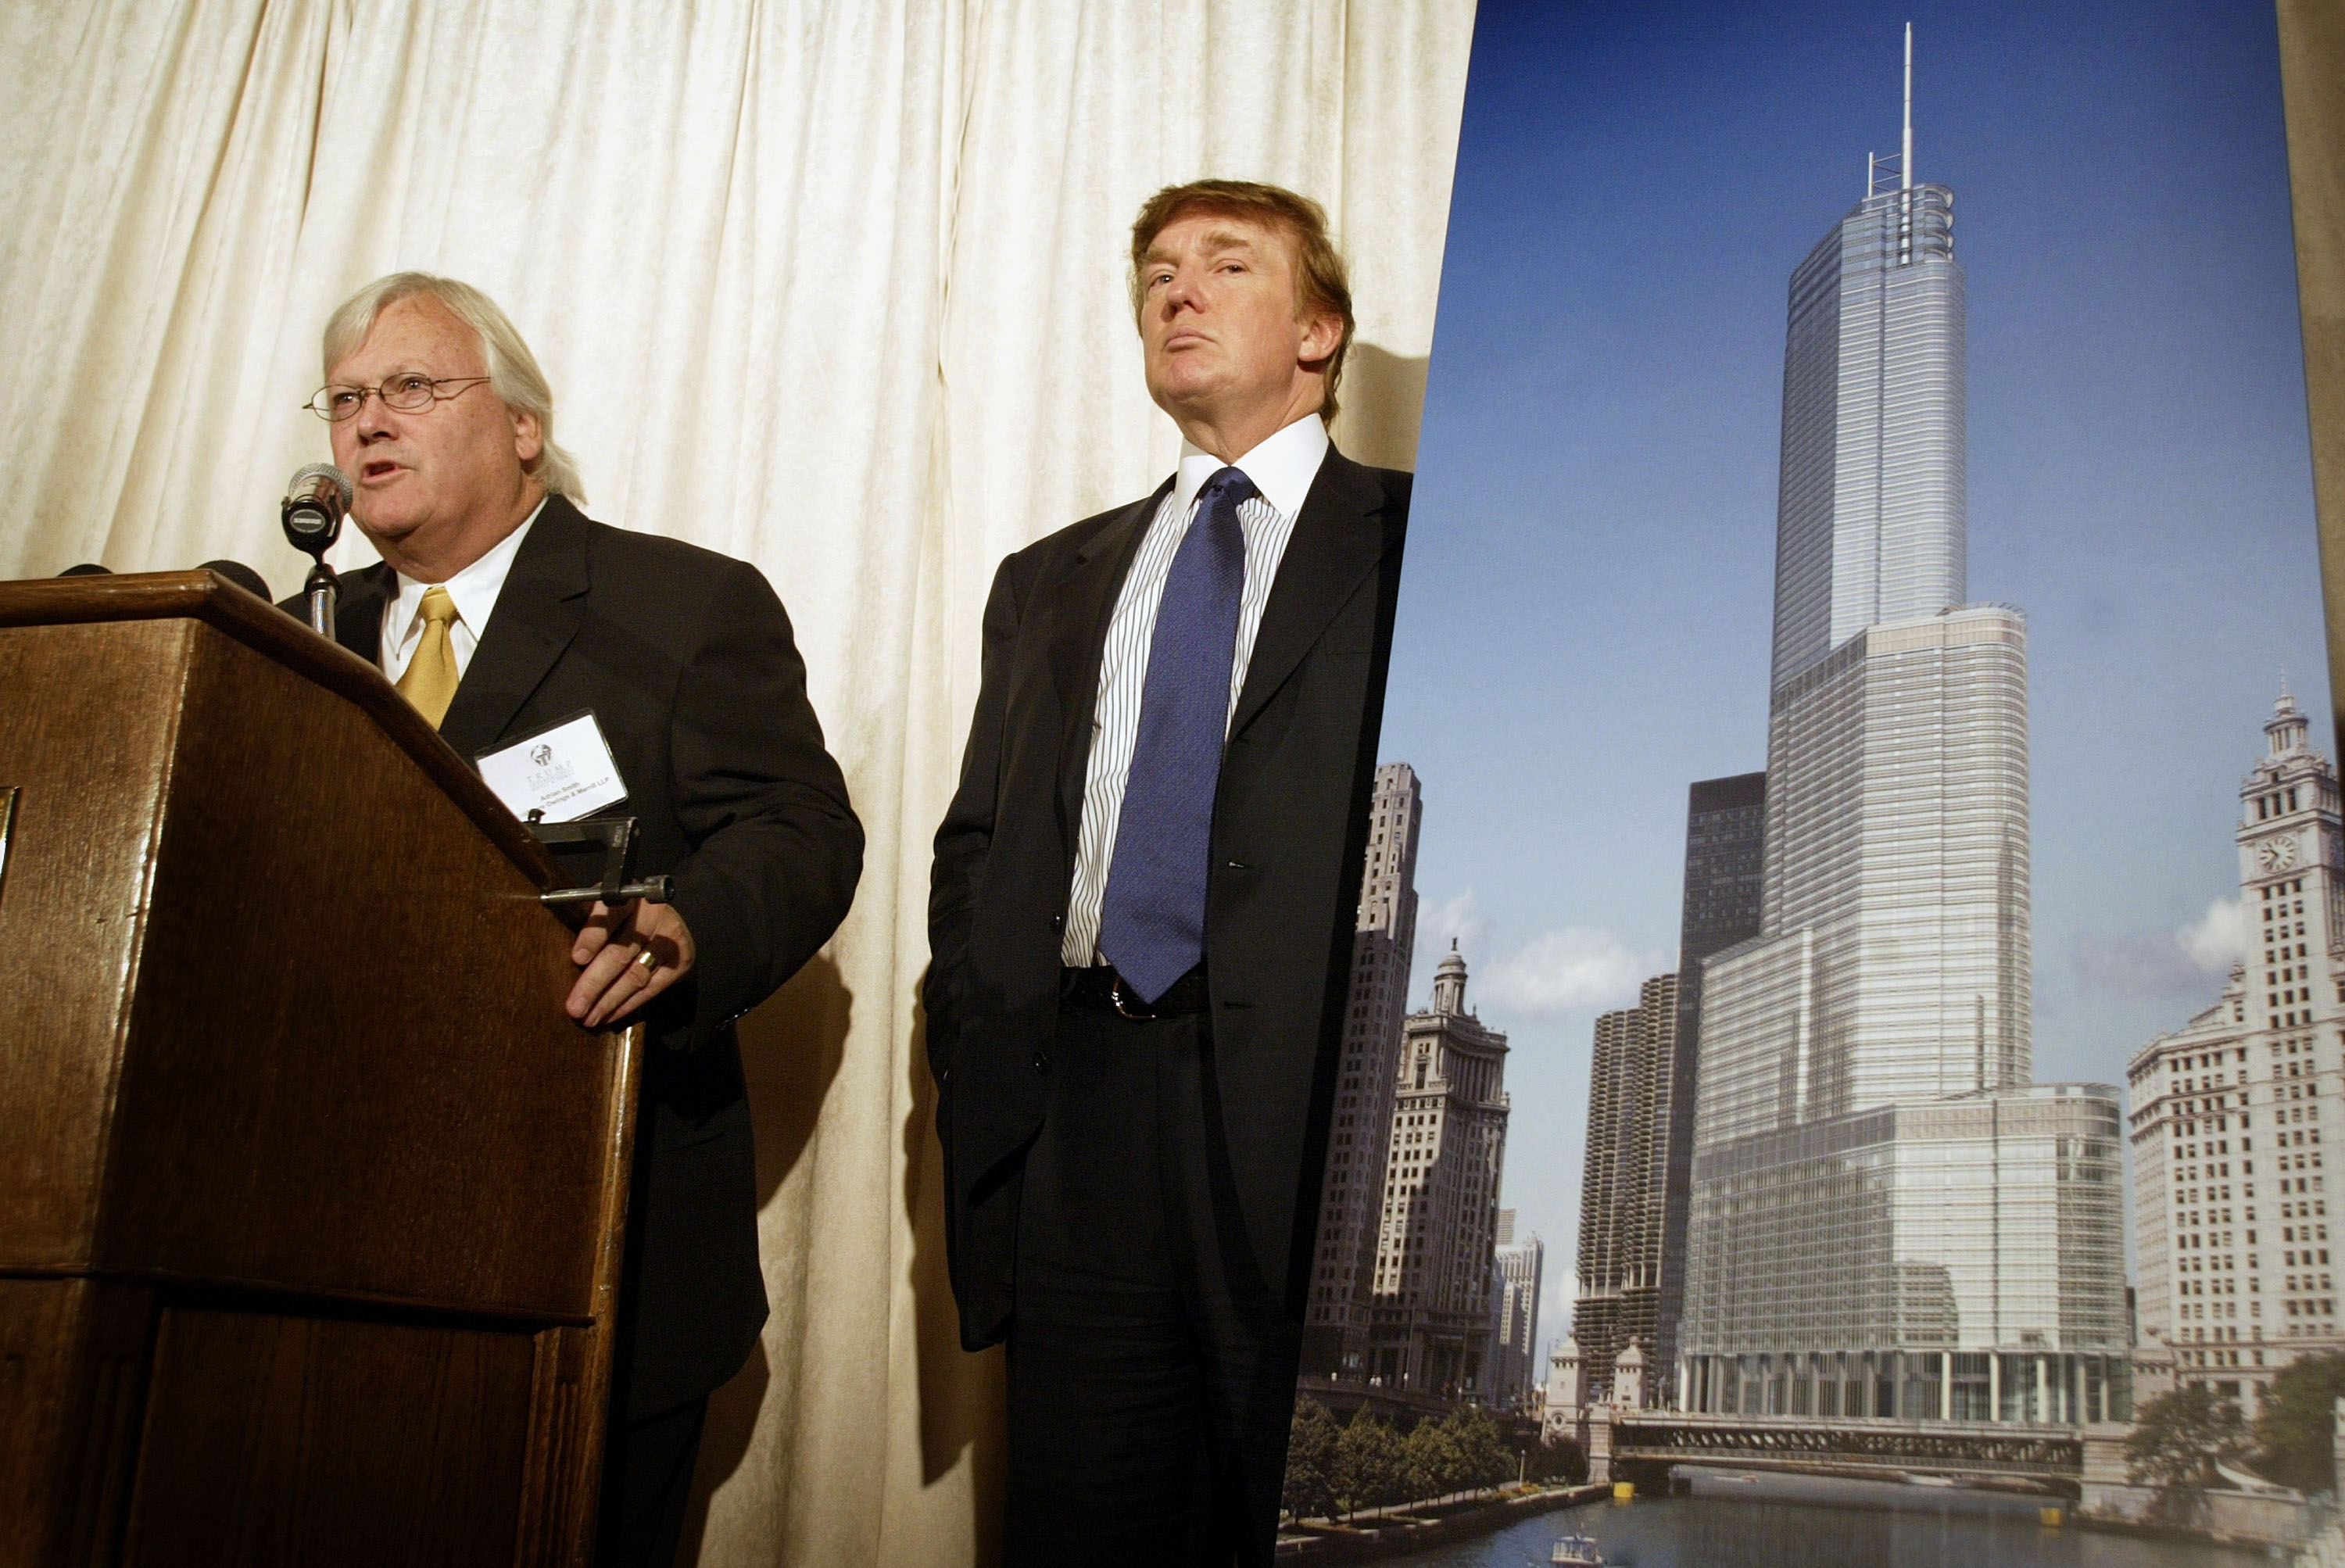 Real estate developer Donald Trump (R) and architect Adrian Smith unveil an artists rendition of Trump Tower Chicago at a news conference September 23, 2003 Chicago, Illinois. The 90-story building, was expected to be finished in 2007, and to house office, apartment, and hotel space.(Getty Images)